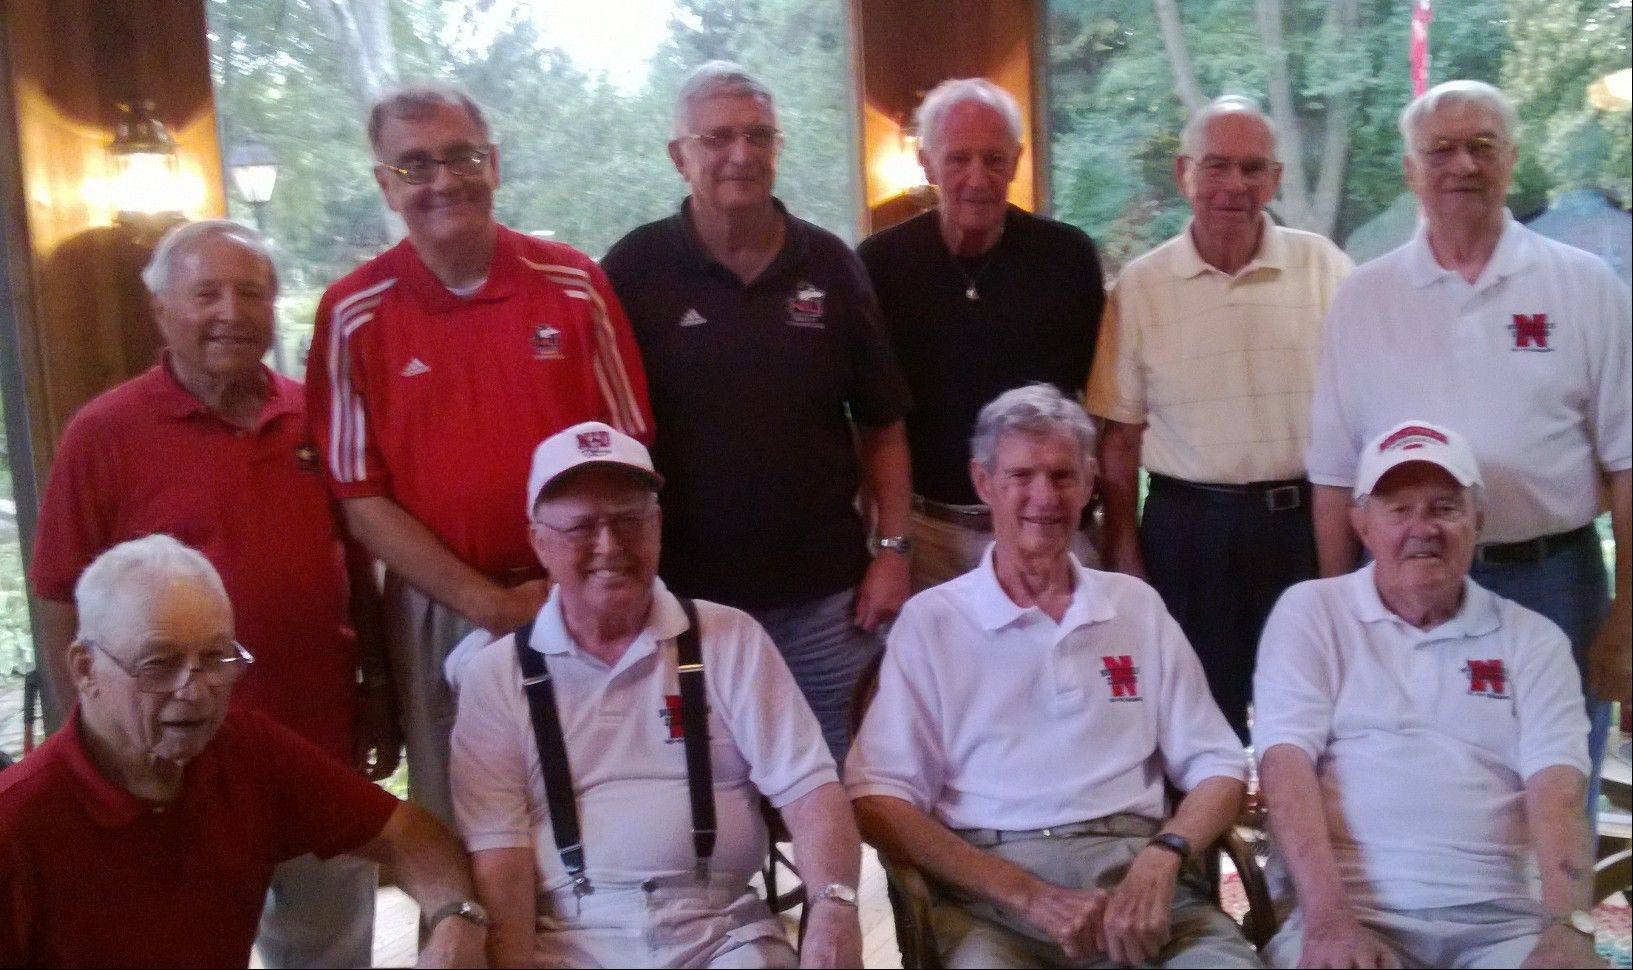 Distinguished Northern Illinois University members, including baseball players from the conference championship teams in 1950-51, pose during a reunion this past week.